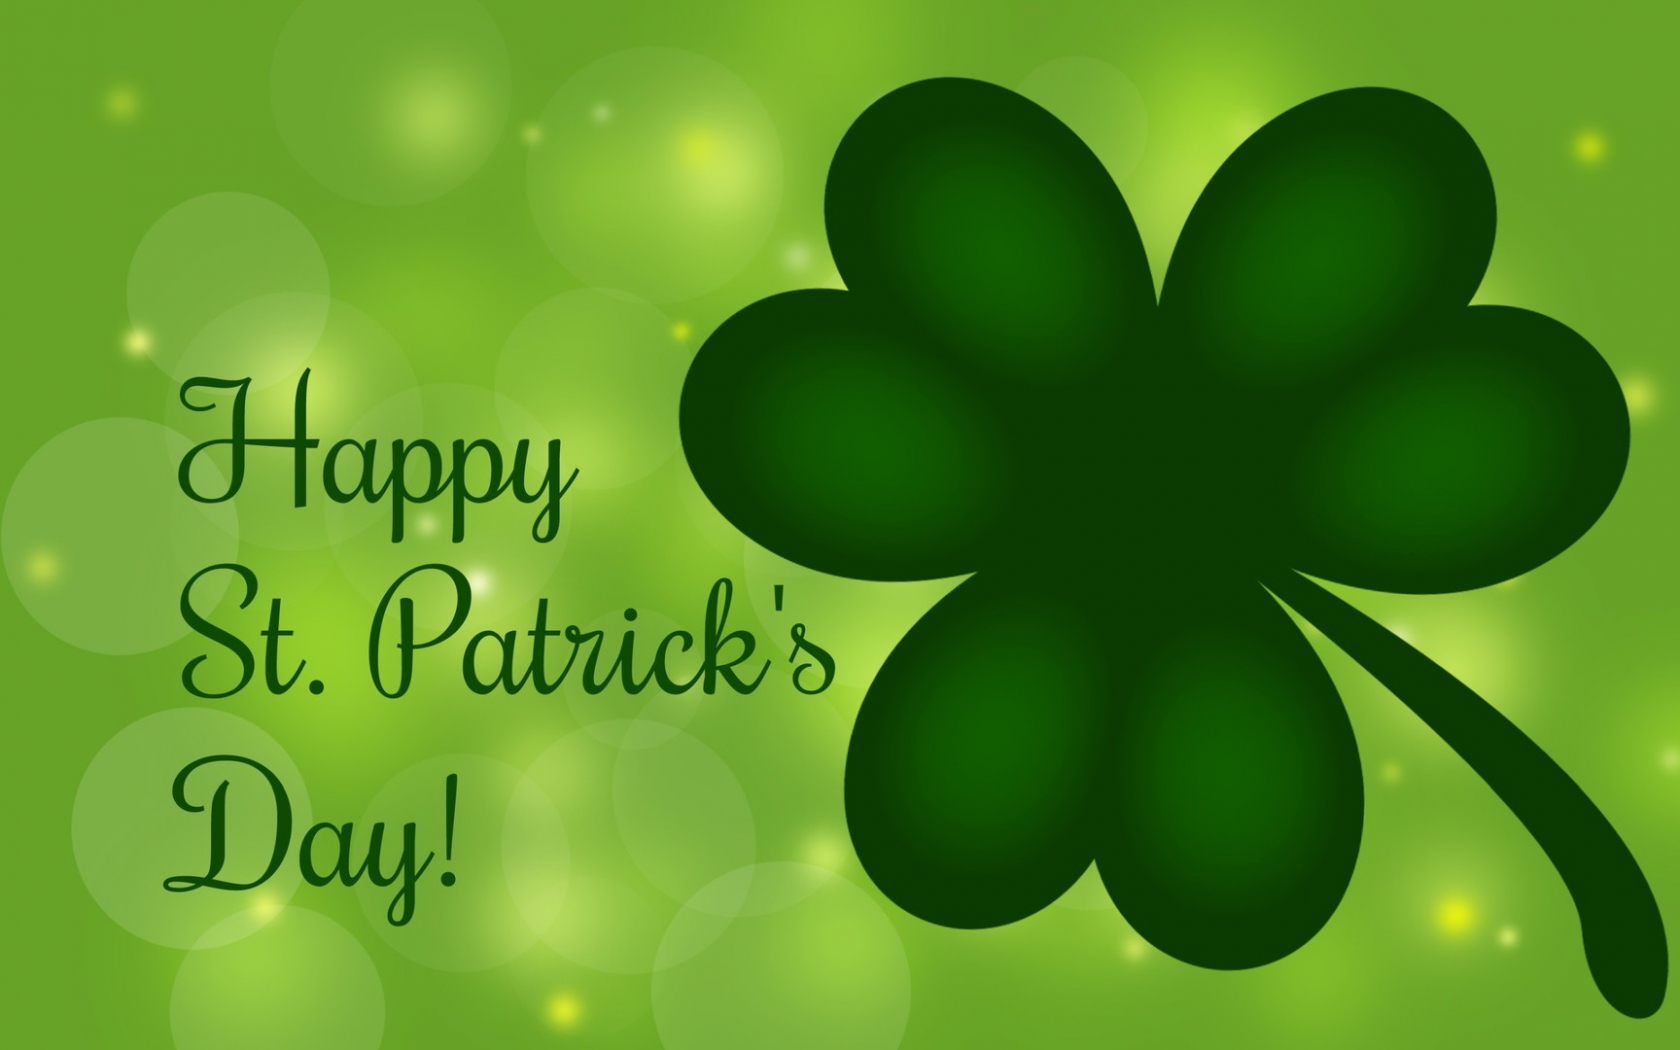 Free Download Saint Patricks Day Wallpaper Is Hd Wallpaper This